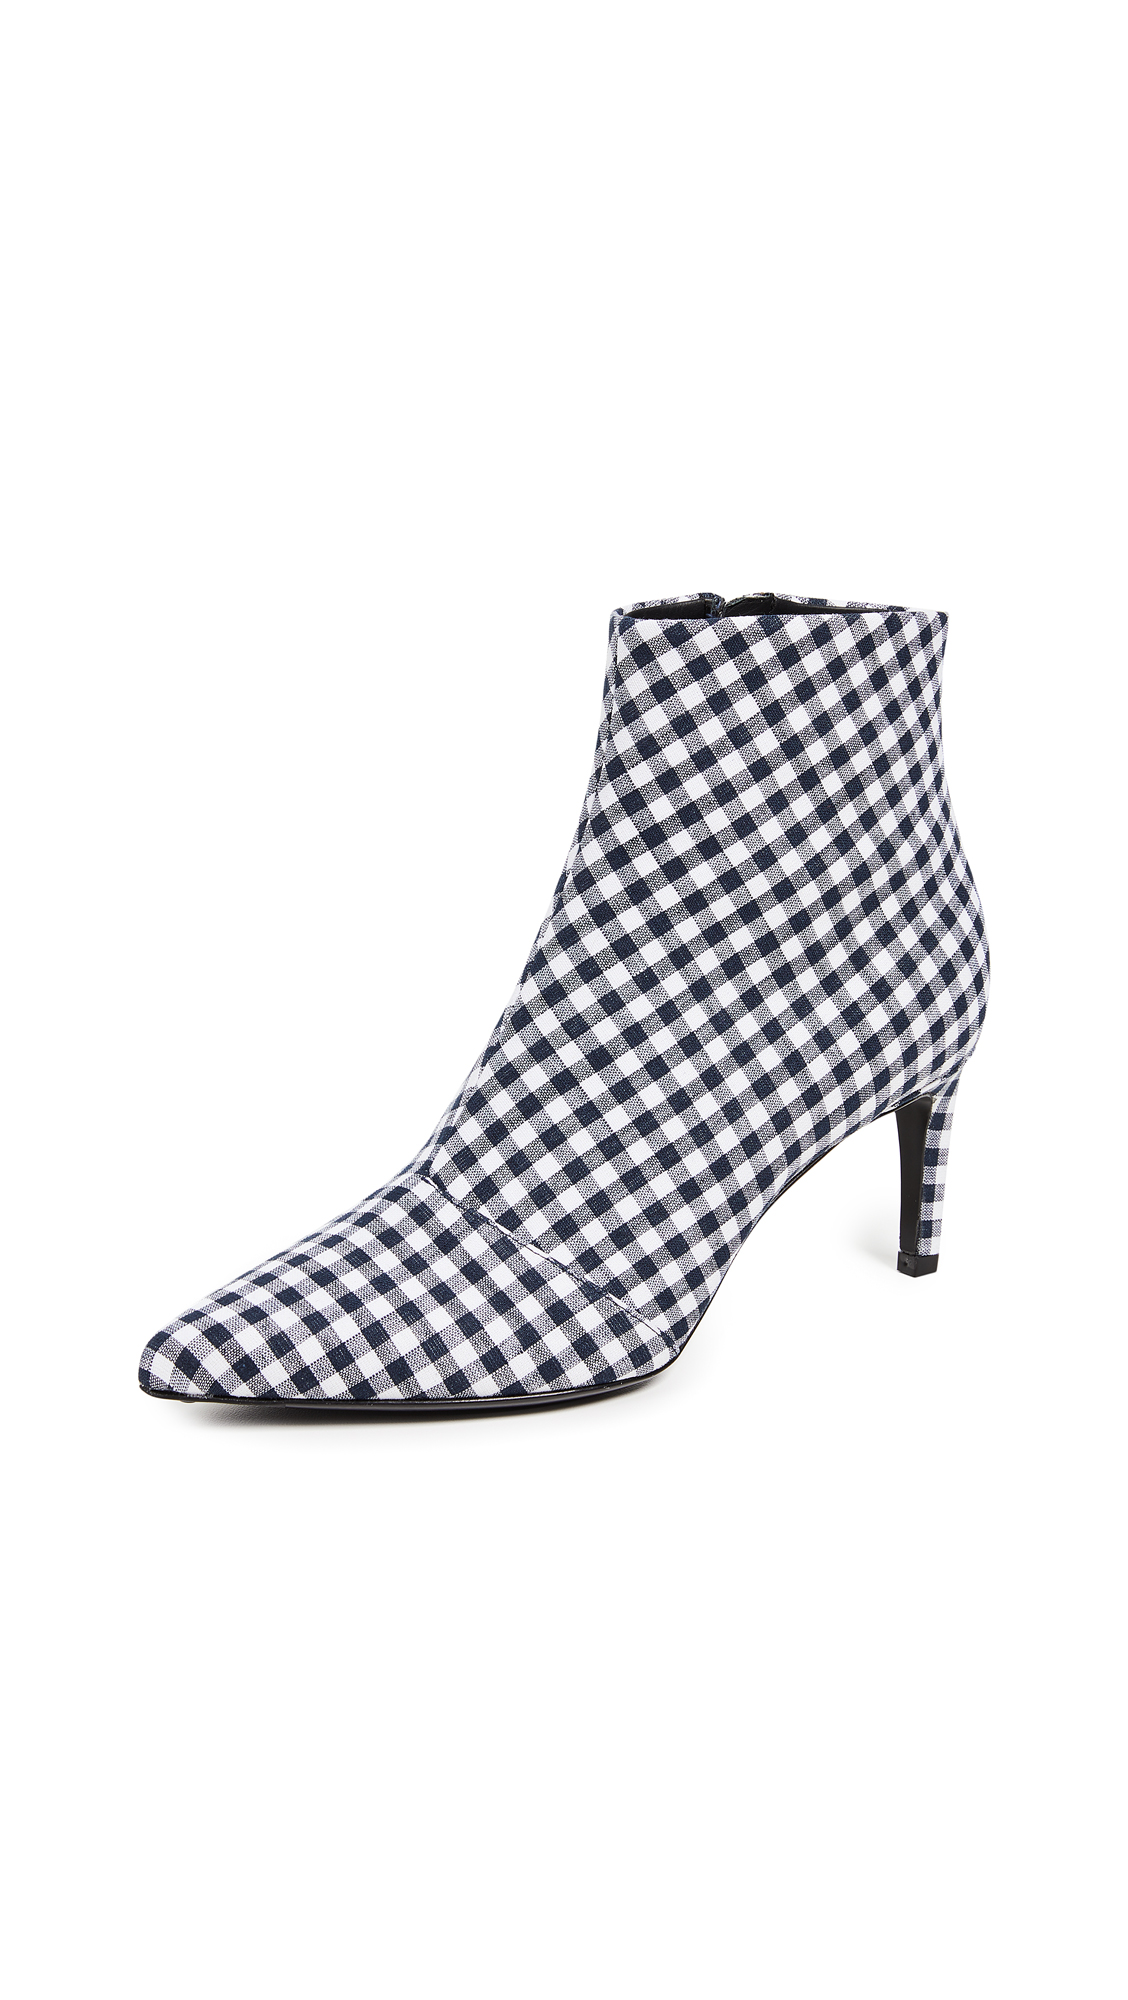 Rag & Bone Beha Booties - Navy Gingham